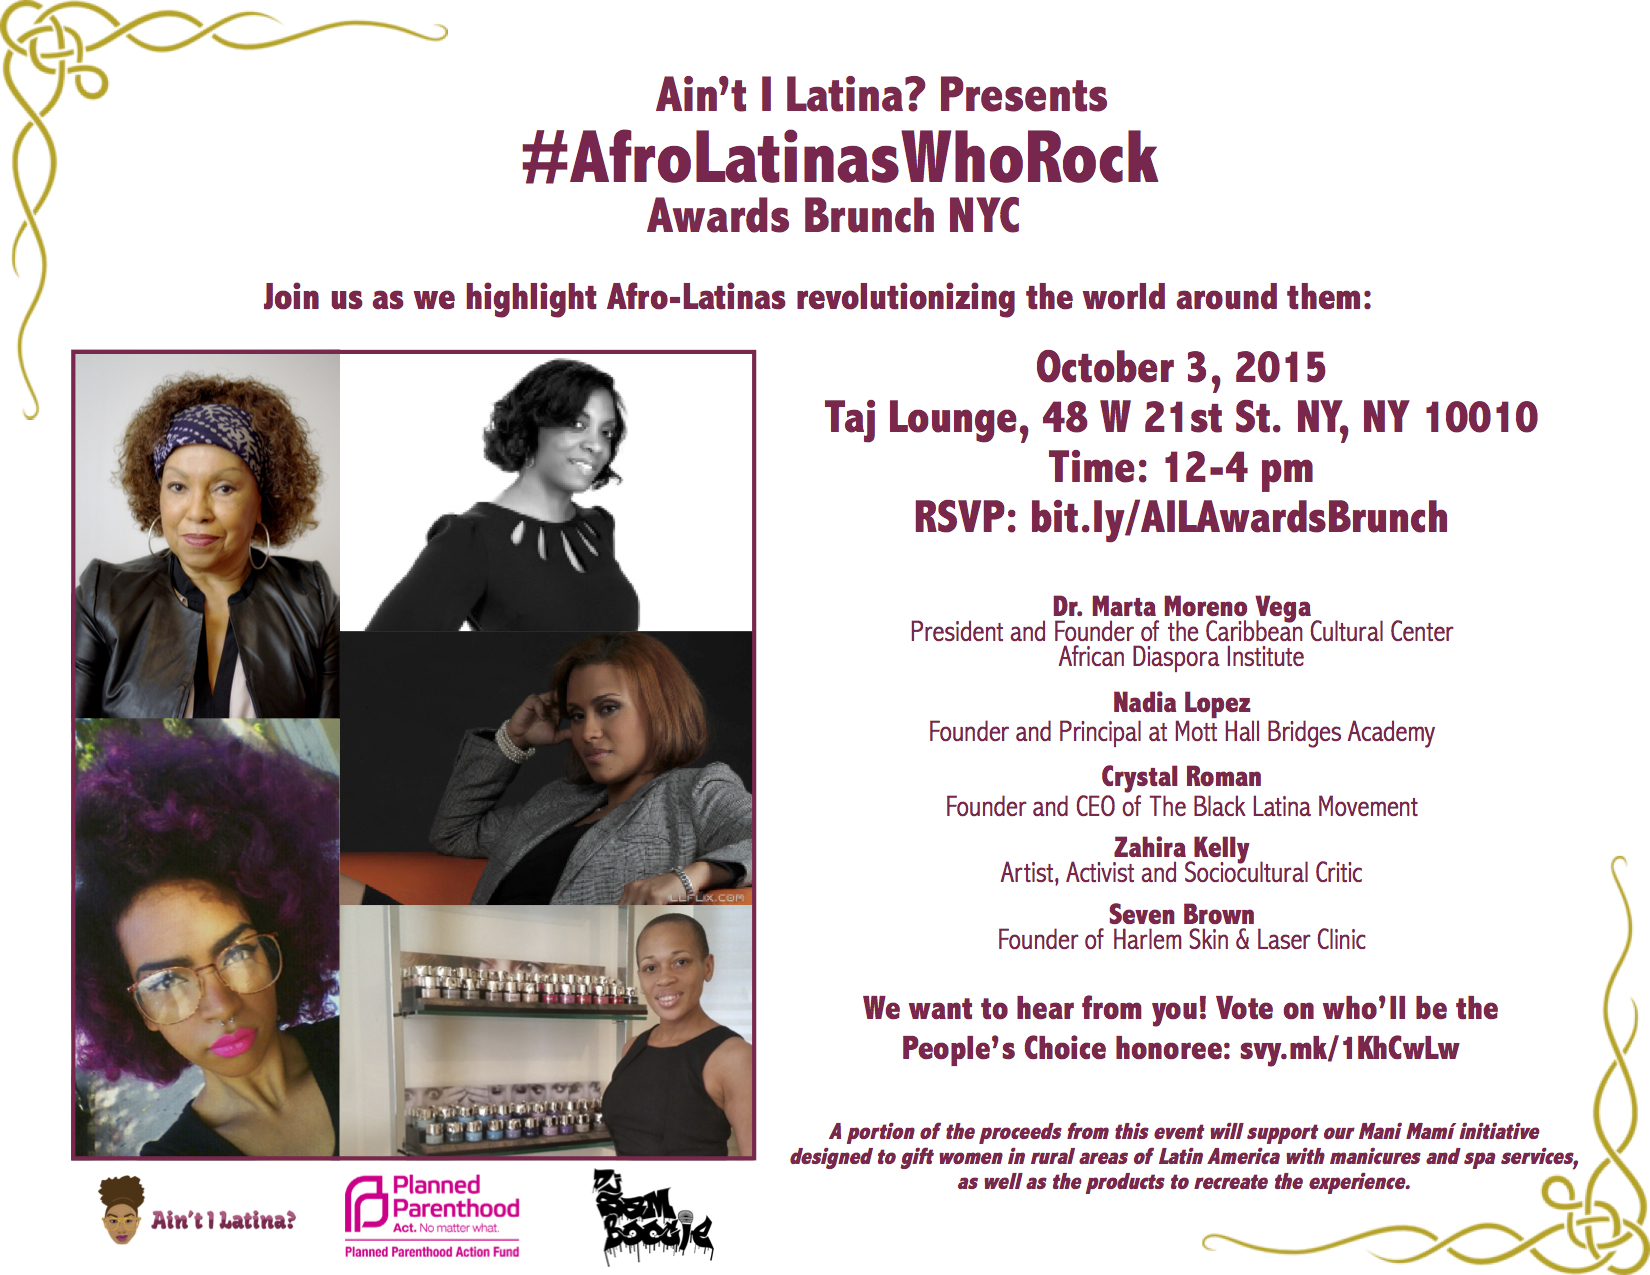 Afro-Latinas-Who-Rock-Awards-Brunch